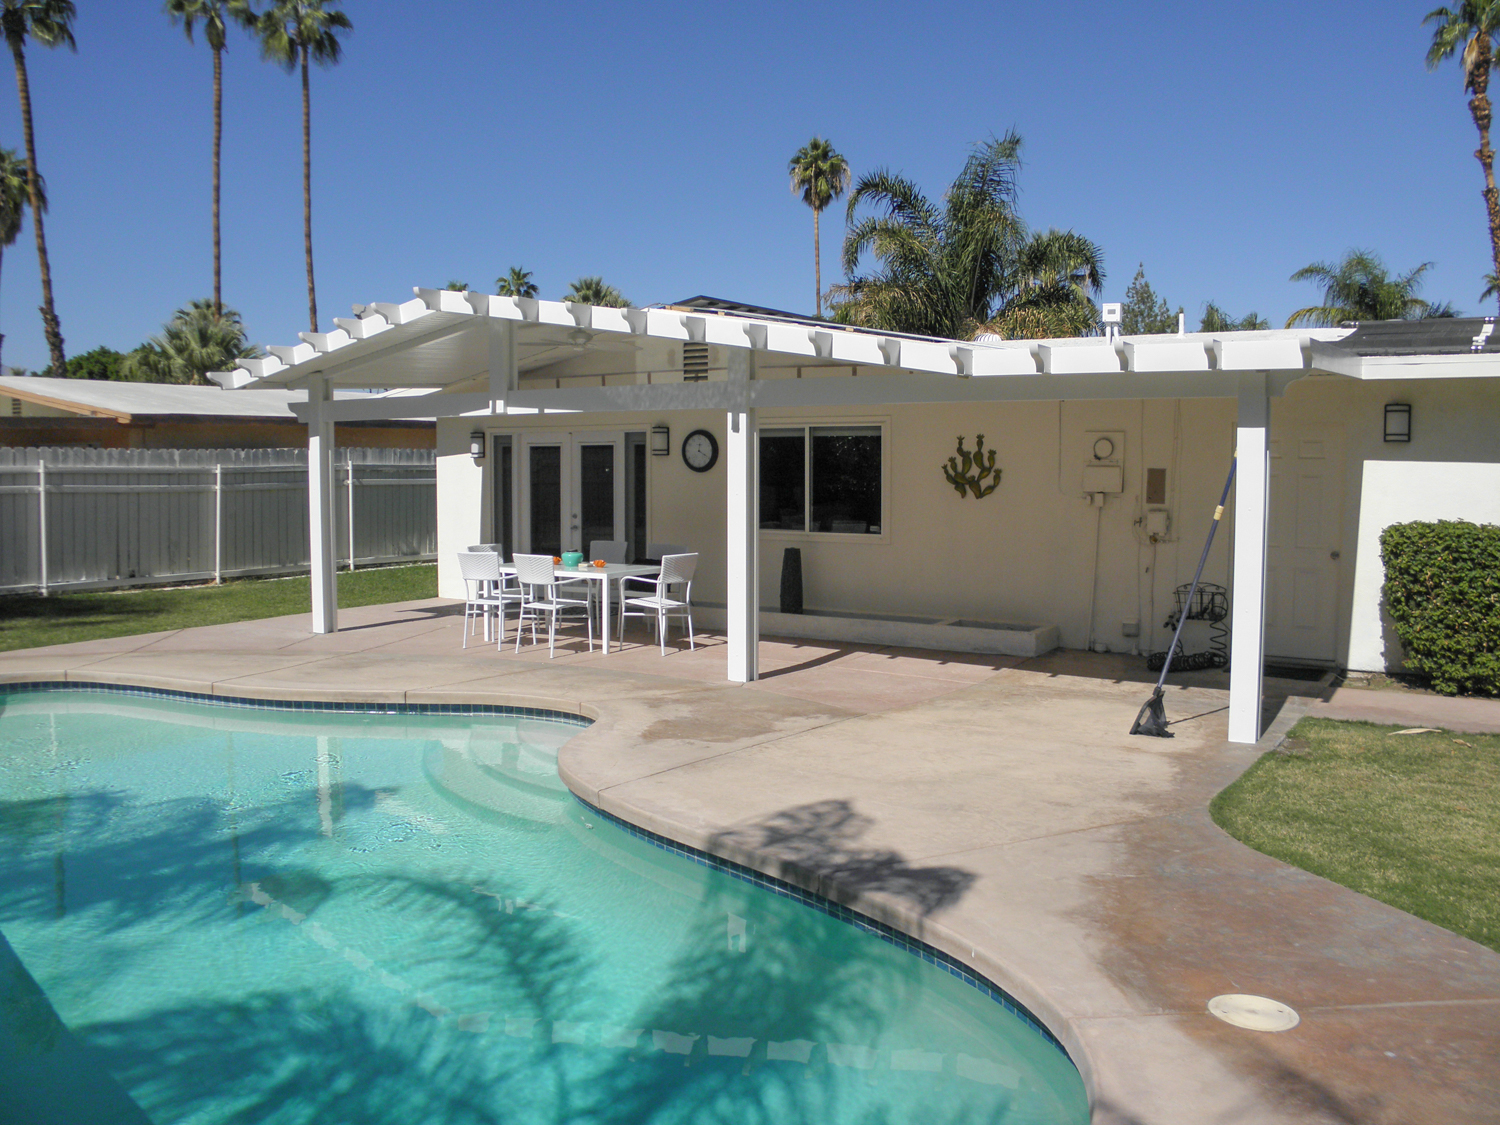 Solid Roof Patio Cover Pictures Banning Beaumont Temecula Hemet  Valley Patios Custom Patio